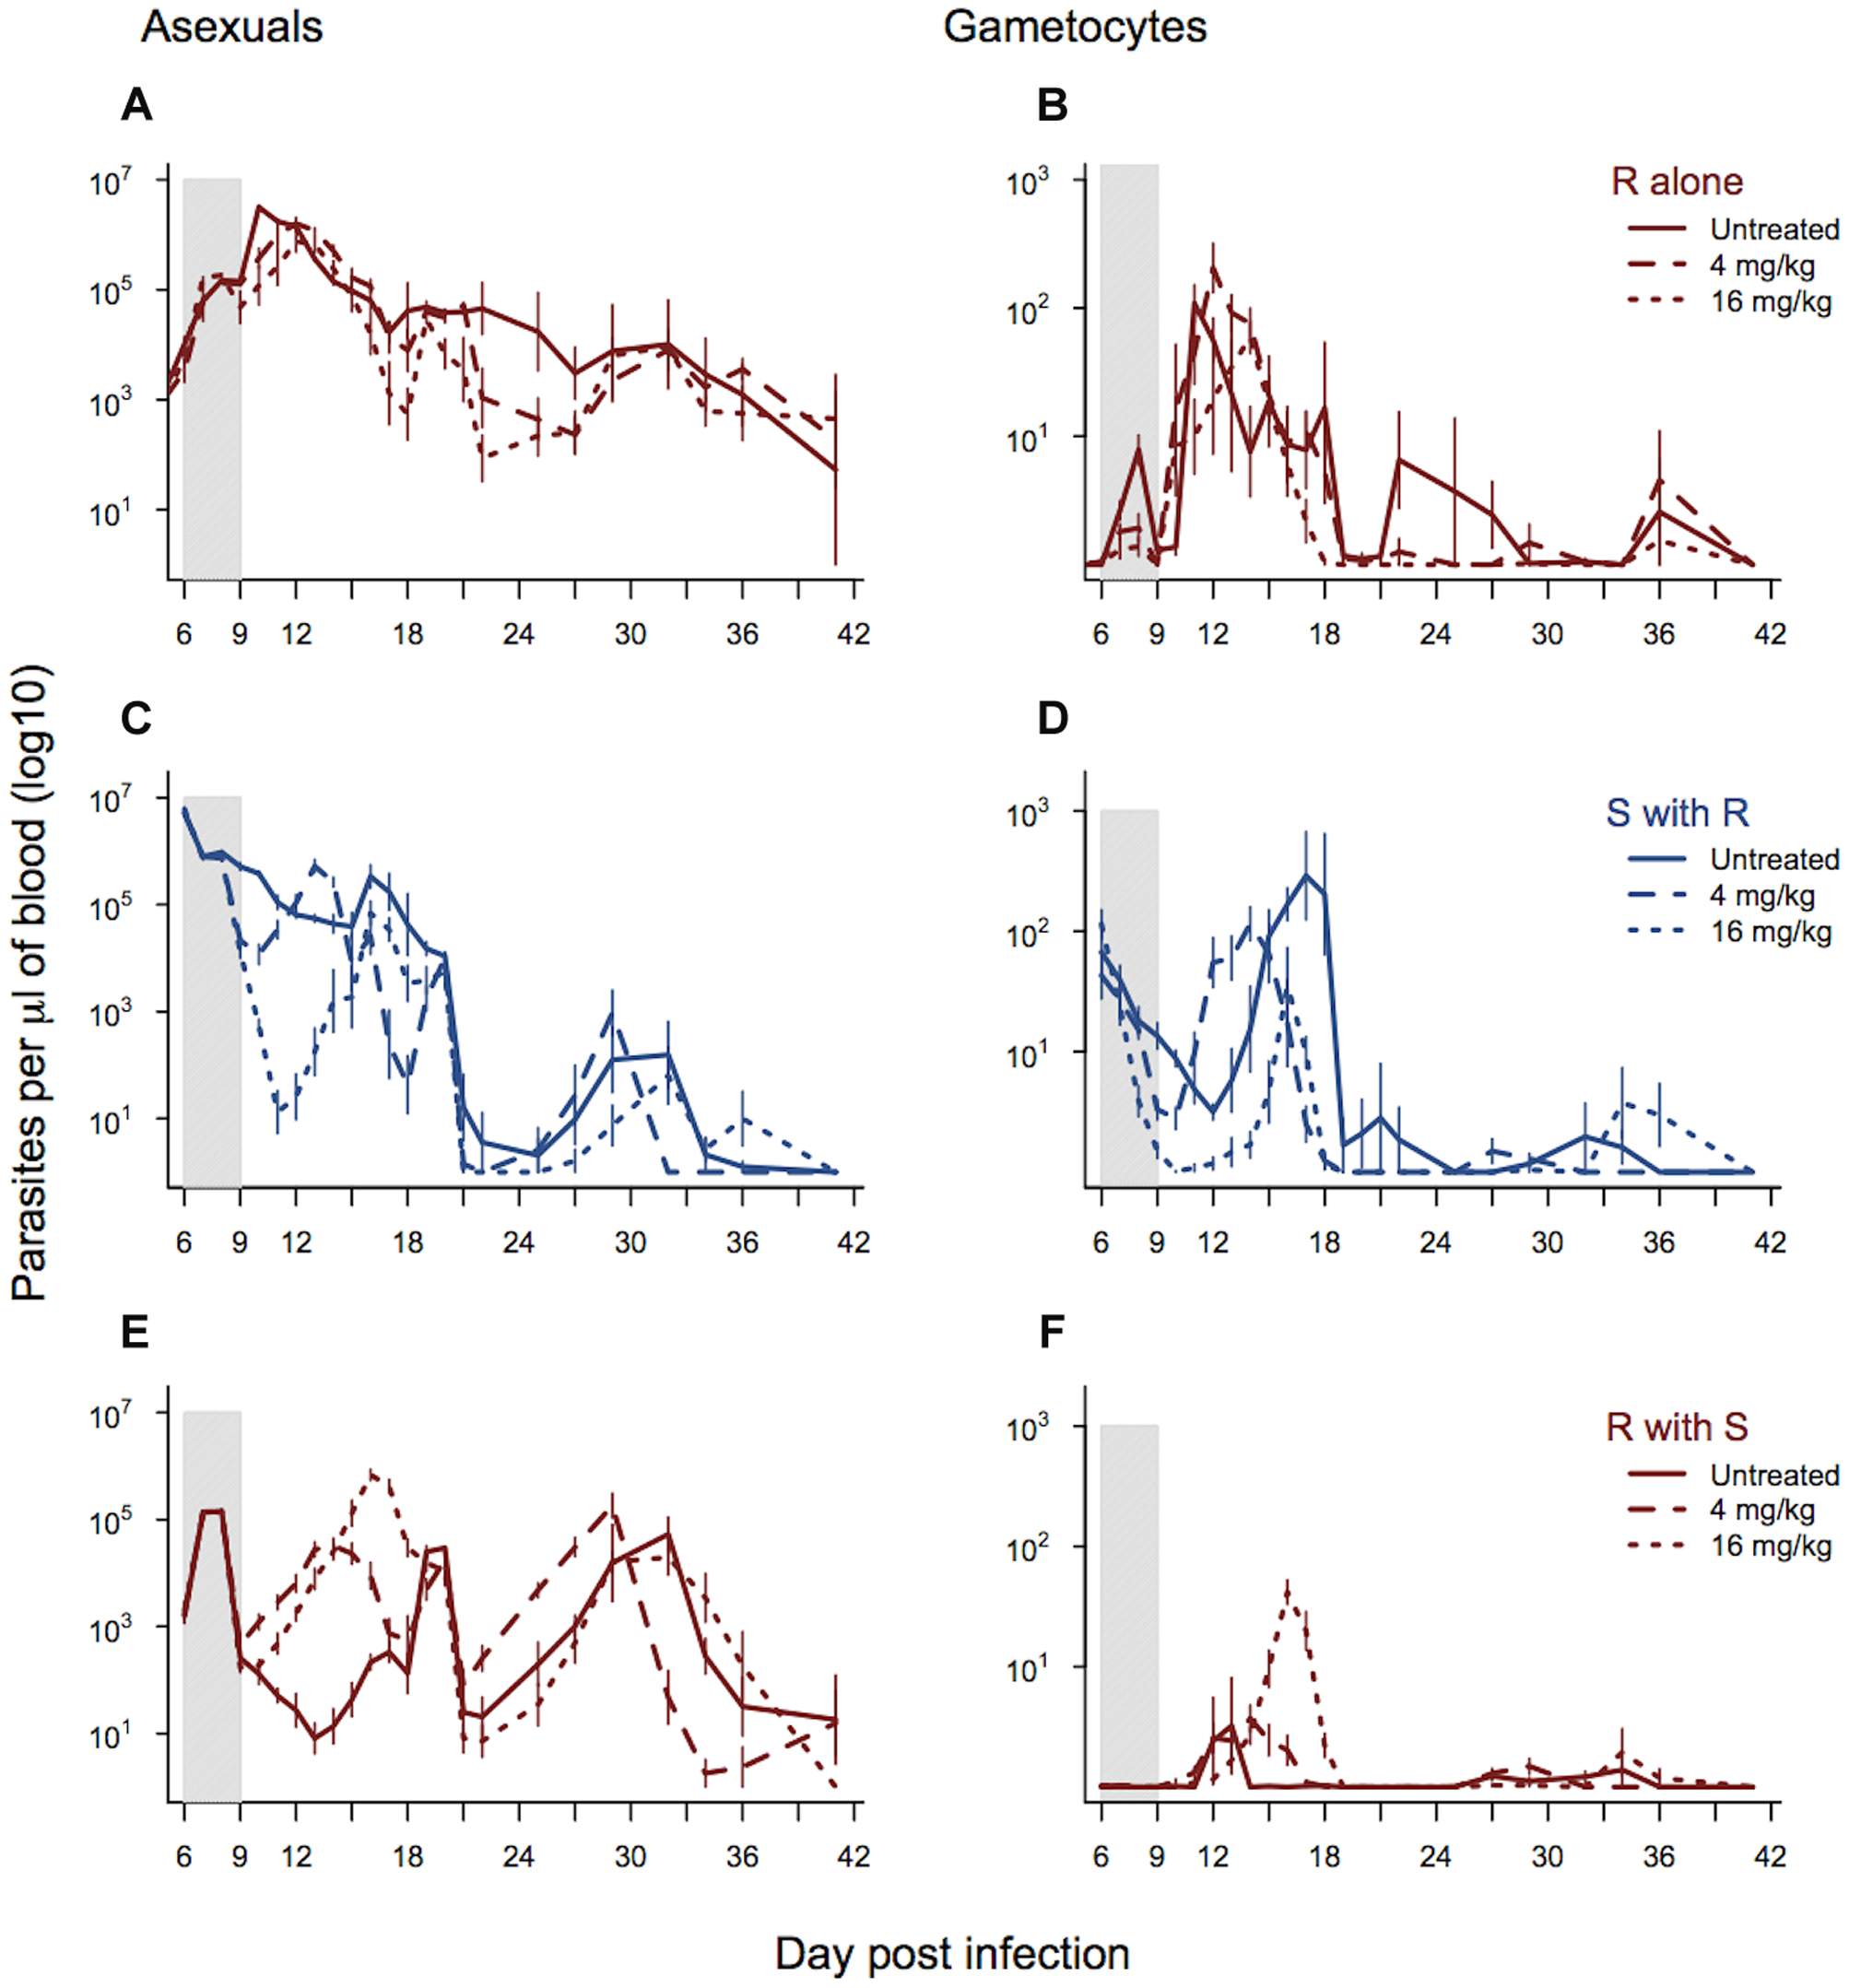 Dynamics of asexual and transmission stage parasites in single and mixed infections under three treatment regimes.